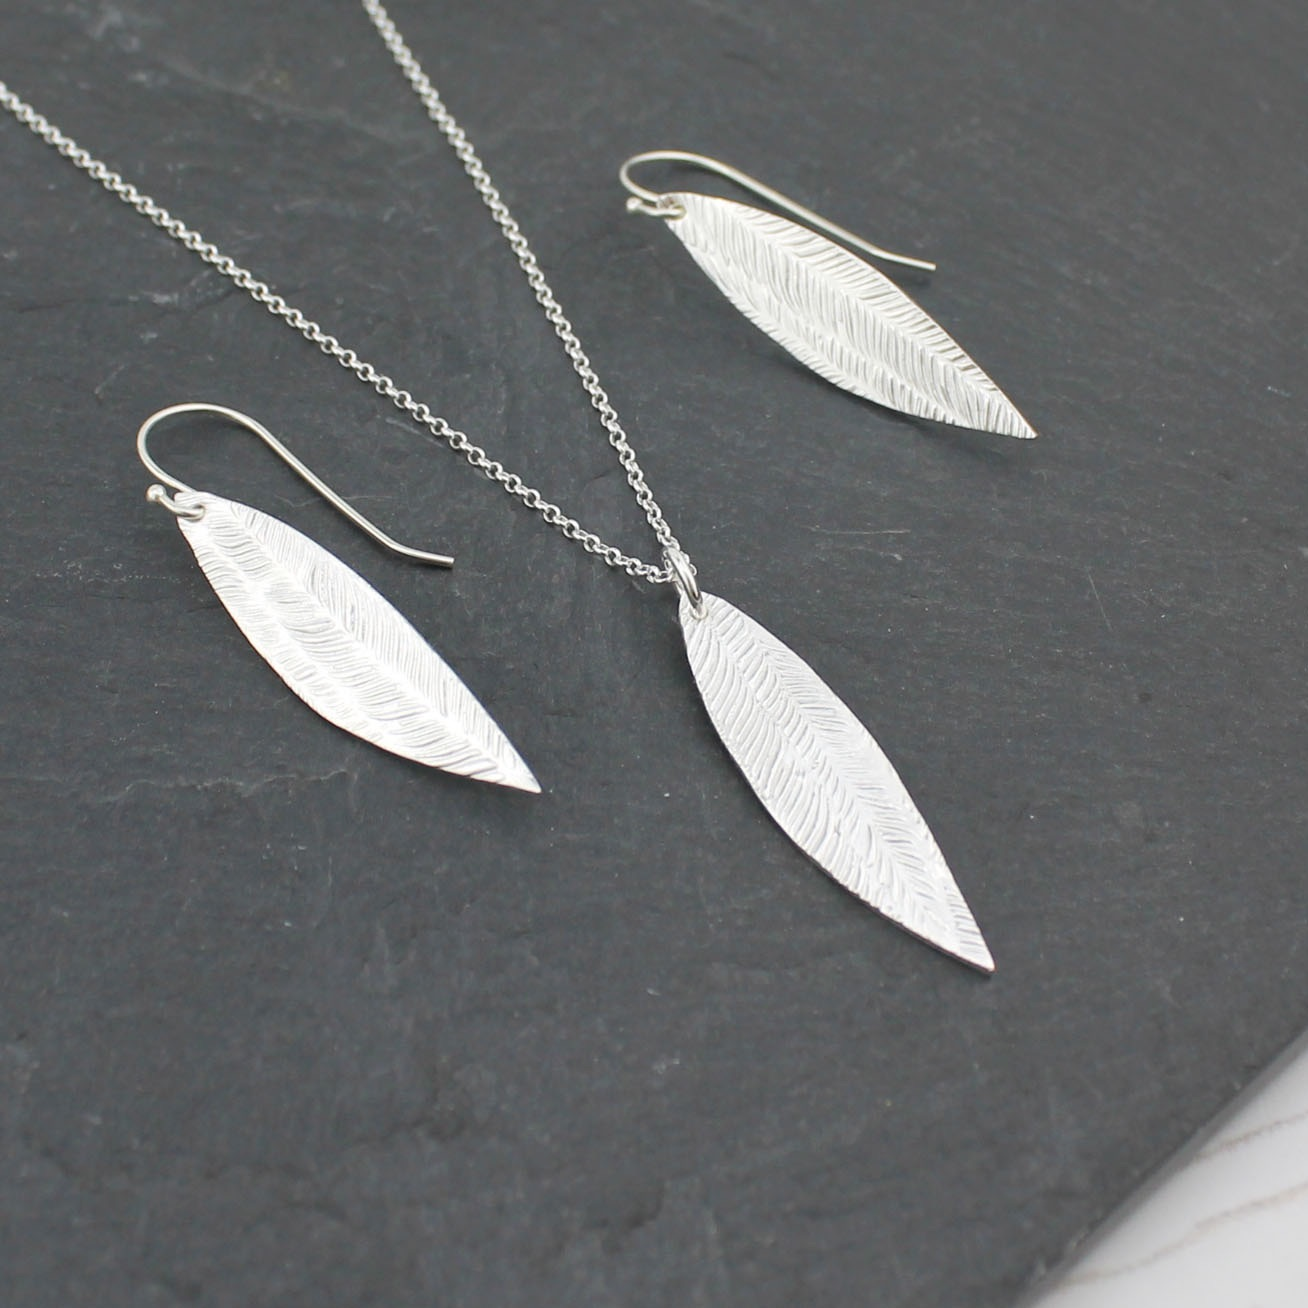 Handmade Sterling Silver Palm Pendant by Lucy Kemp